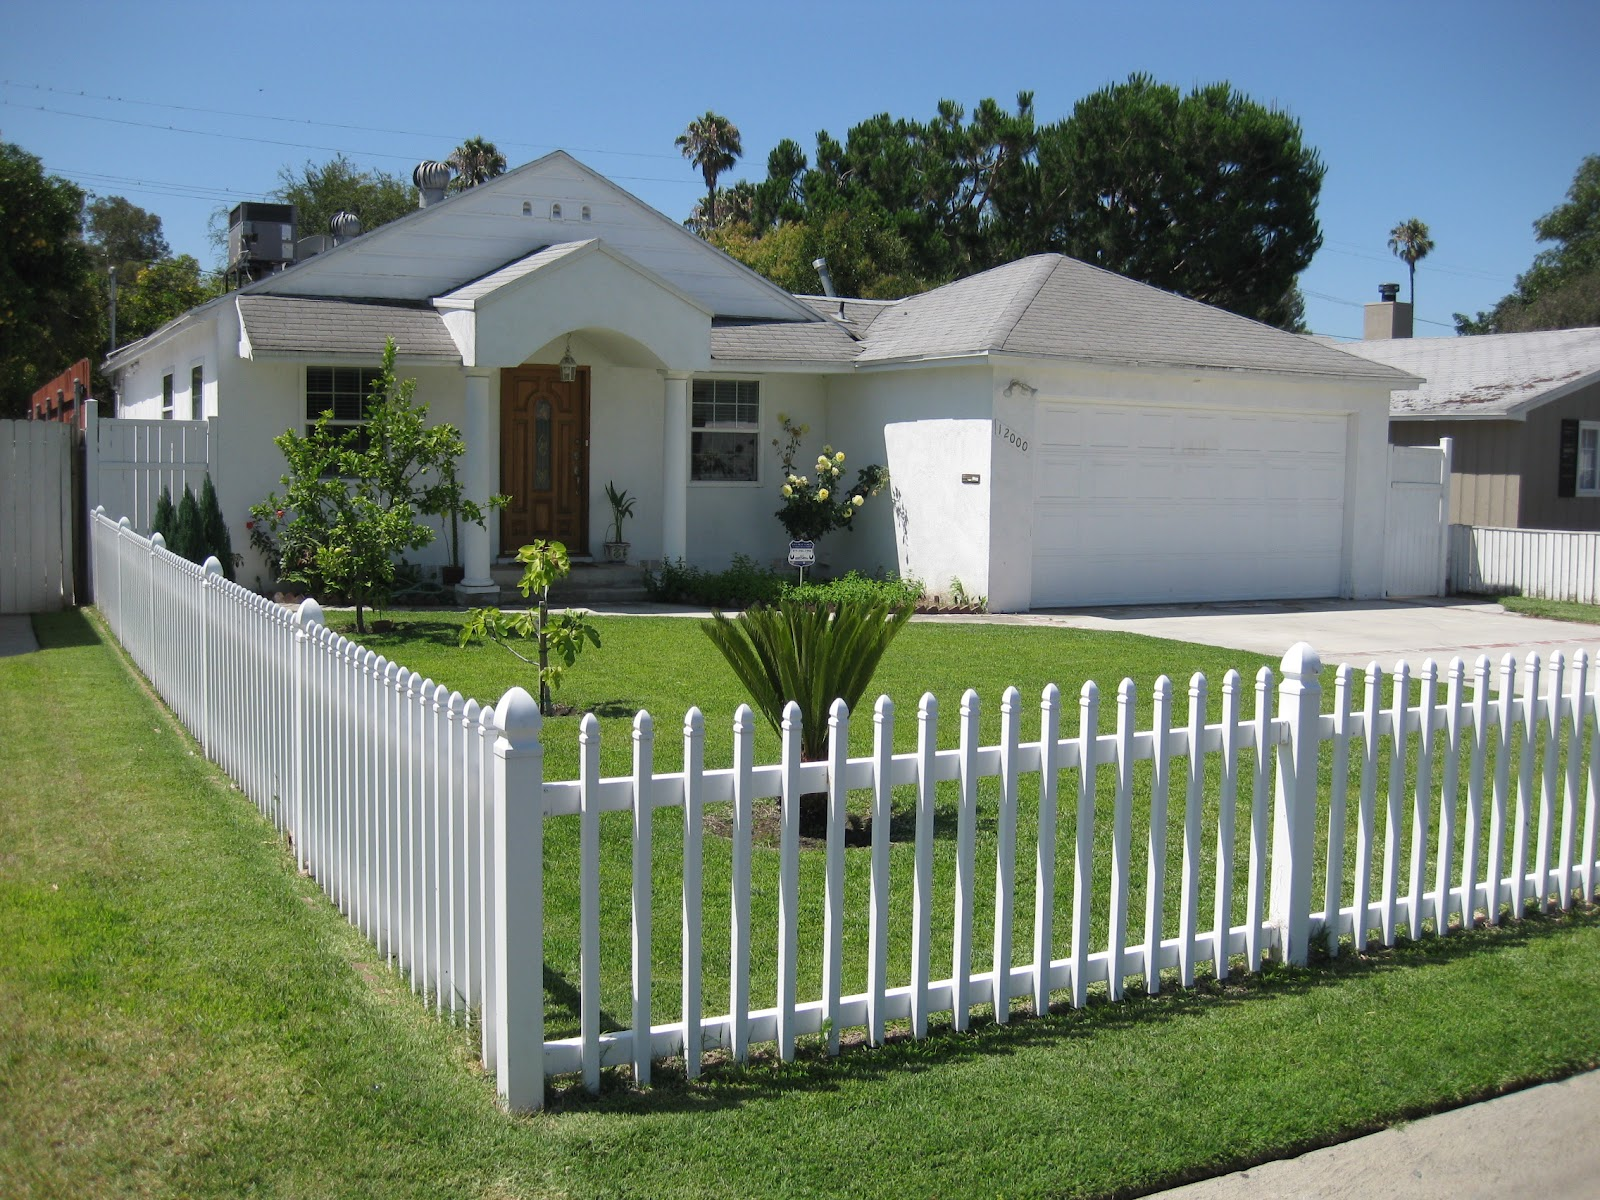 Just Listed! 2+2, White Picket Fence in Valley Village! $479K